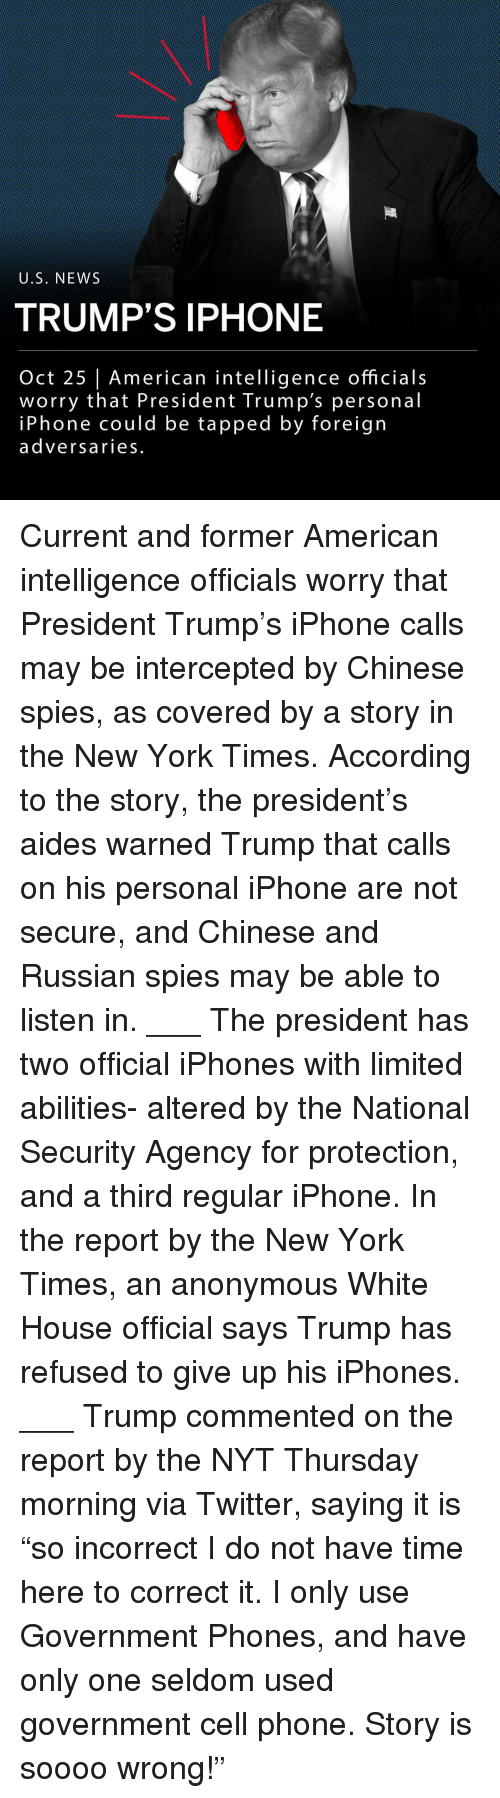 "Tapped: U.S, NEWS  TRUMP'S IPHONE  Oct 25 | American intelligence officials  worry that President Trump's personal  iPhone could be tapped by foreign  adversaries. Current and former American intelligence officials worry that President Trump's iPhone calls may be intercepted by Chinese spies, as covered by a story in the New York Times. According to the story, the president's aides warned Trump that calls on his personal iPhone are not secure, and Chinese and Russian spies may be able to listen in. ___ The president has two official iPhones with limited abilities- altered by the National Security Agency for protection, and a third regular iPhone. In the report by the New York Times, an anonymous White House official says Trump has refused to give up his iPhones. ___ Trump commented on the report by the NYT Thursday morning via Twitter, saying it is ""so incorrect I do not have time here to correct it. I only use Government Phones, and have only one seldom used government cell phone. Story is soooo wrong!"""